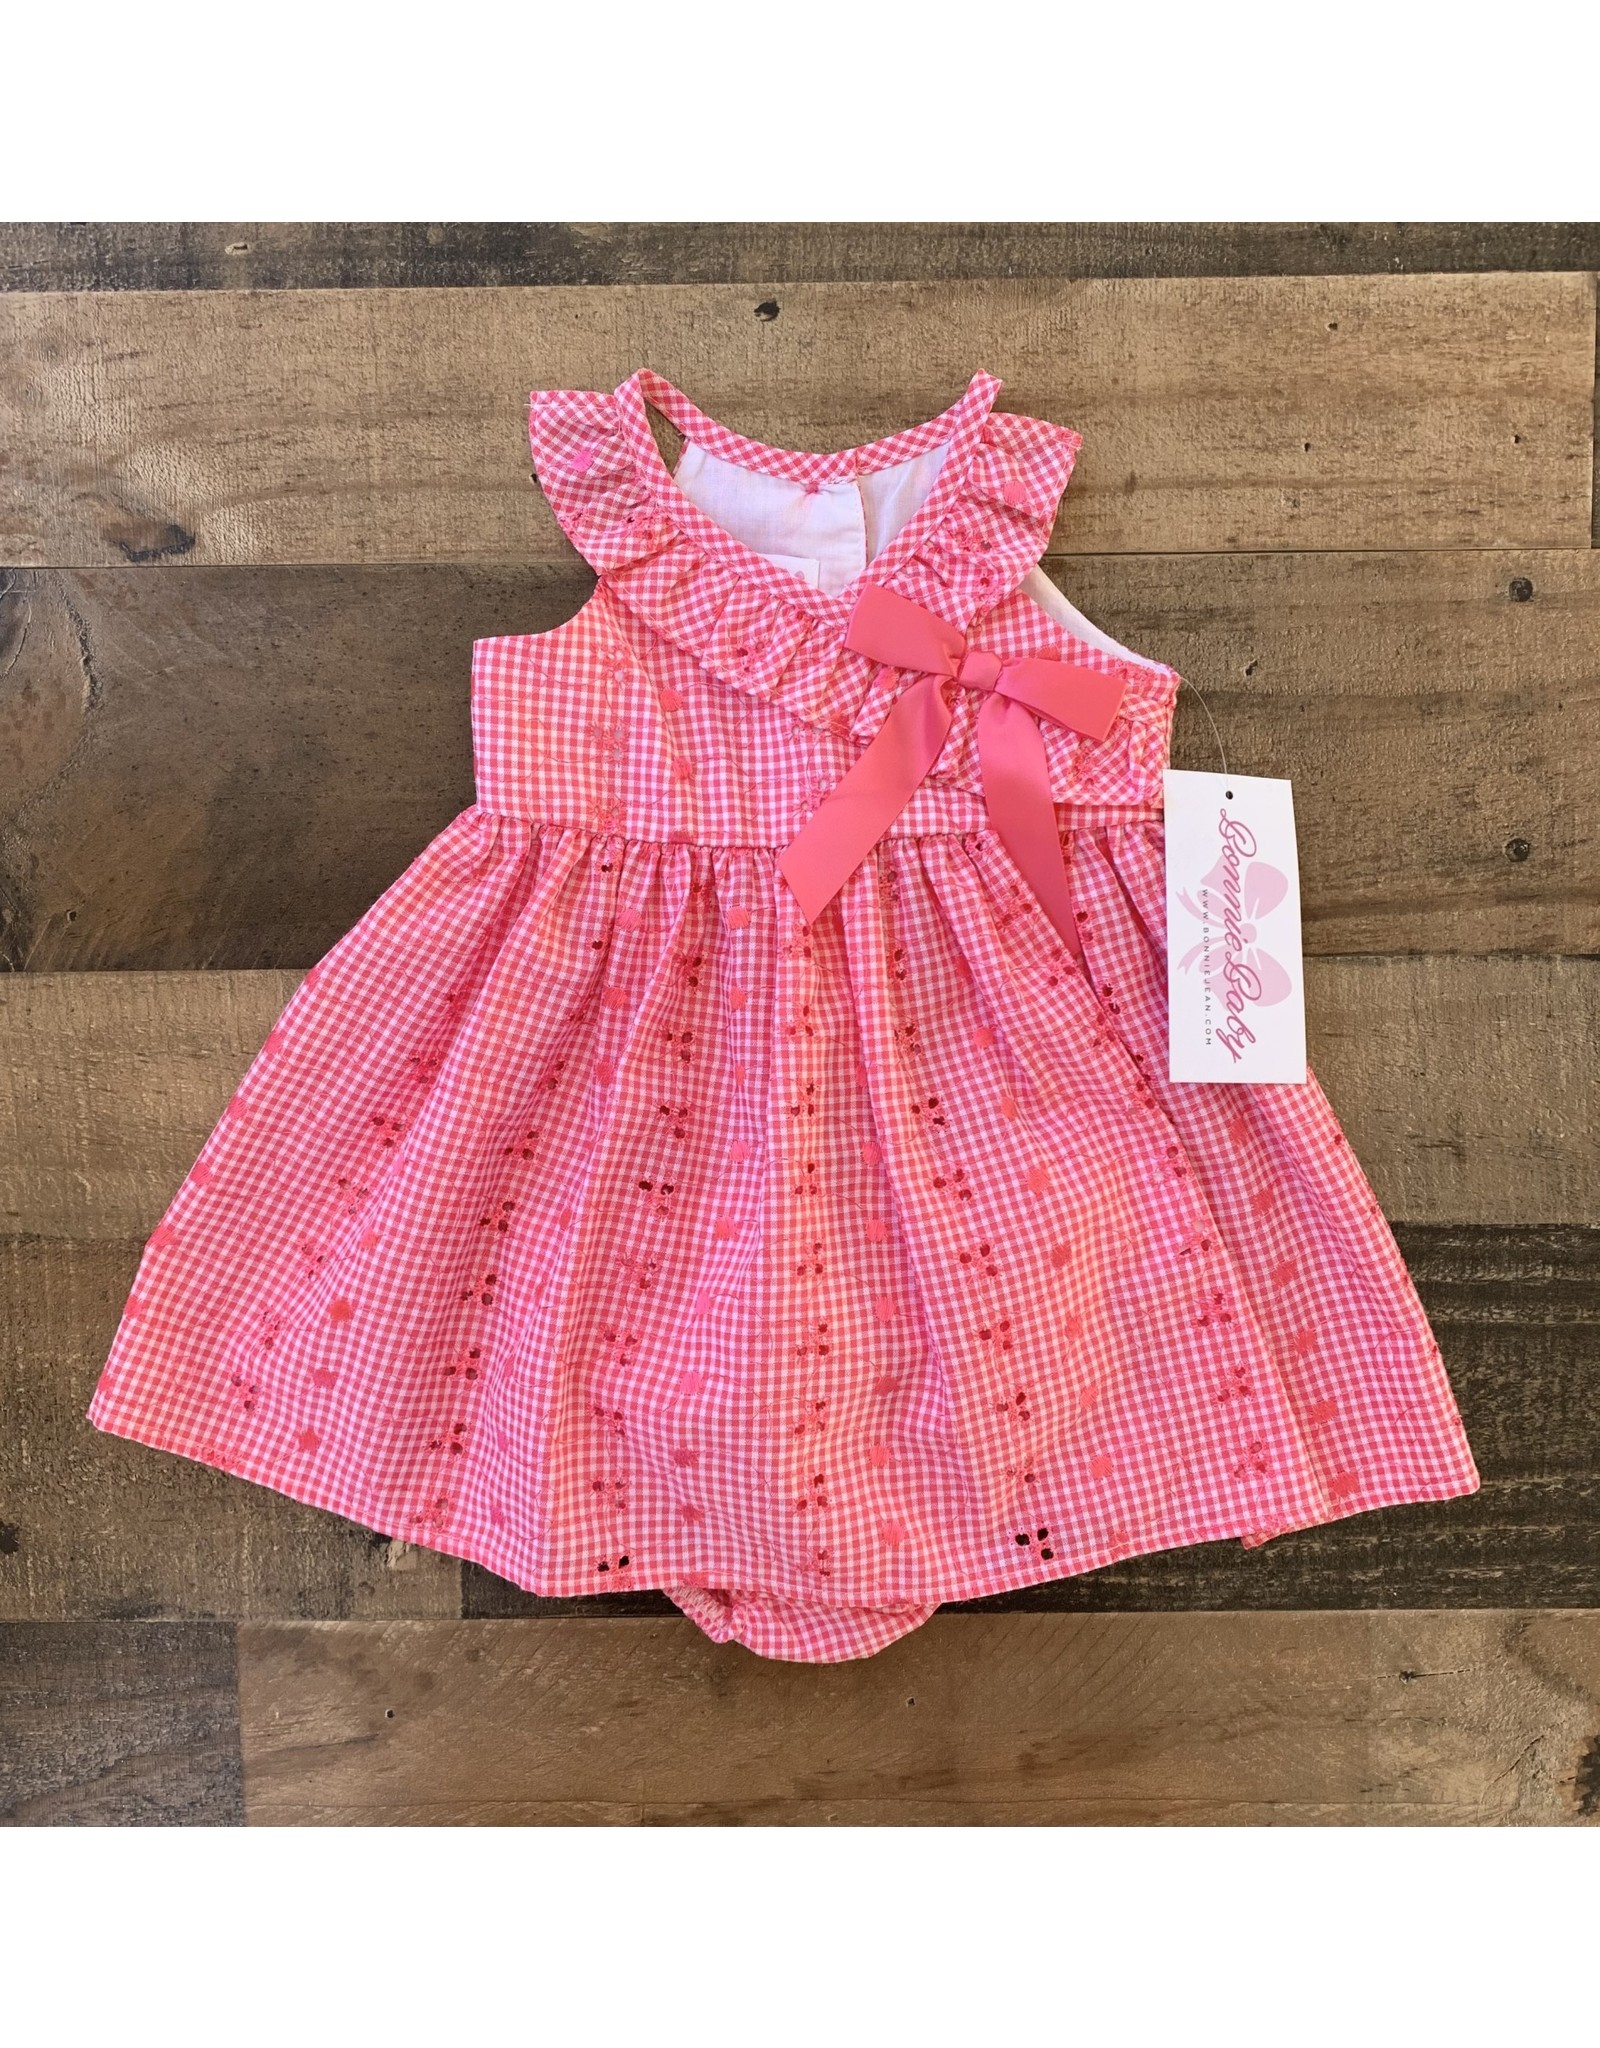 Bonnie  Jean Bonnie Jean- Embroidered Pink Check Sundress